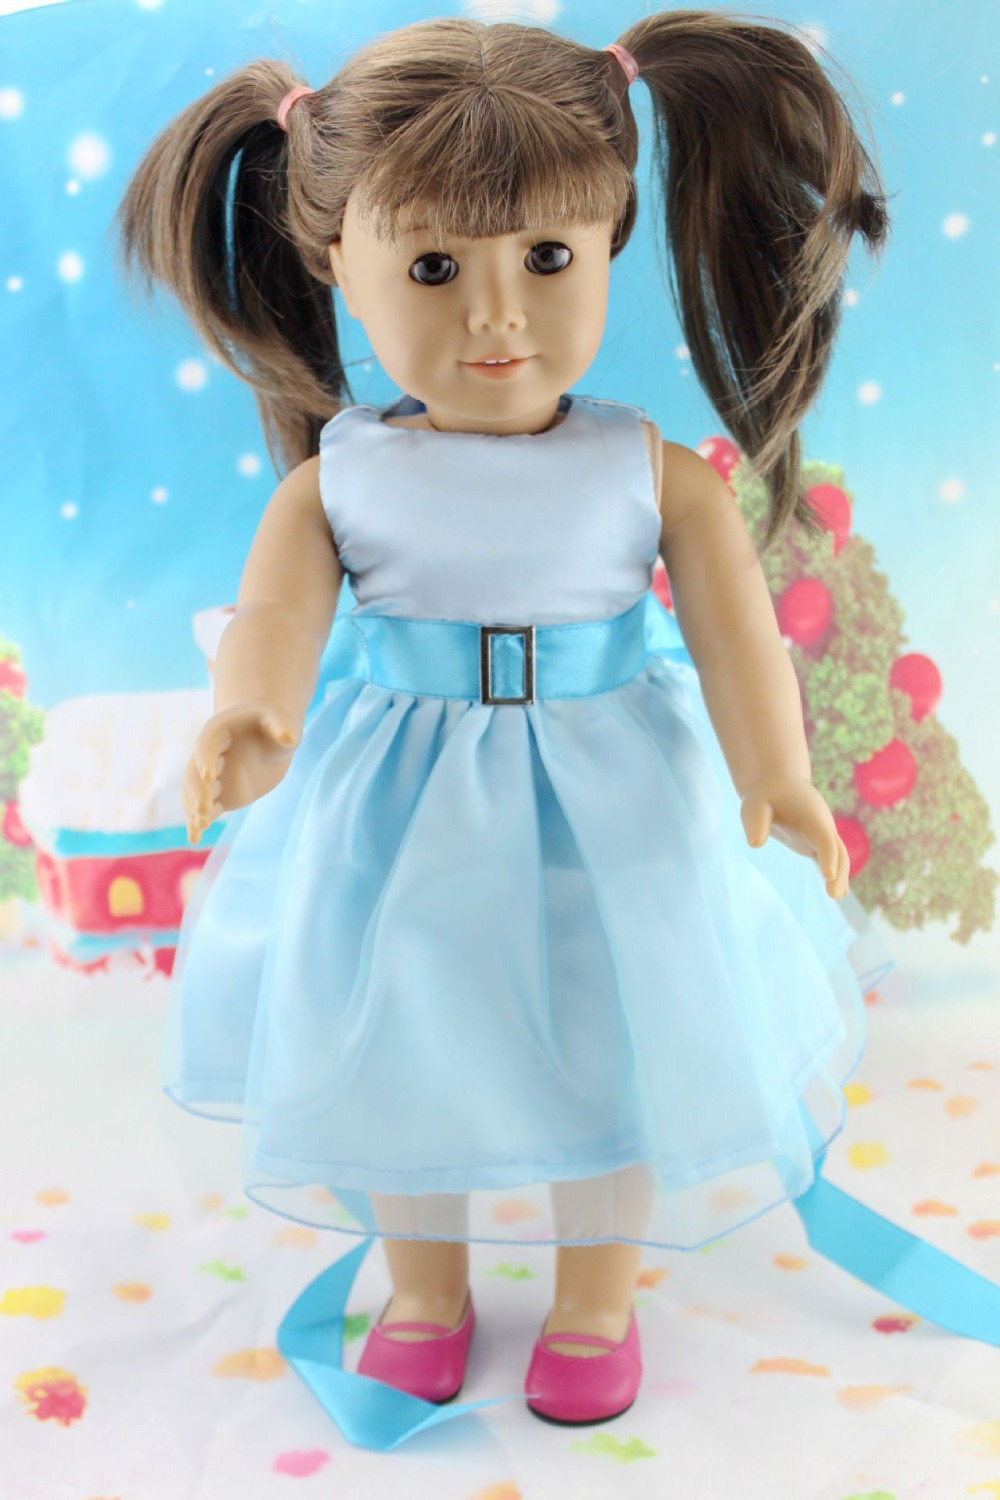 Doll clothes MONOPOLY game fits 18 inch American girl dolls